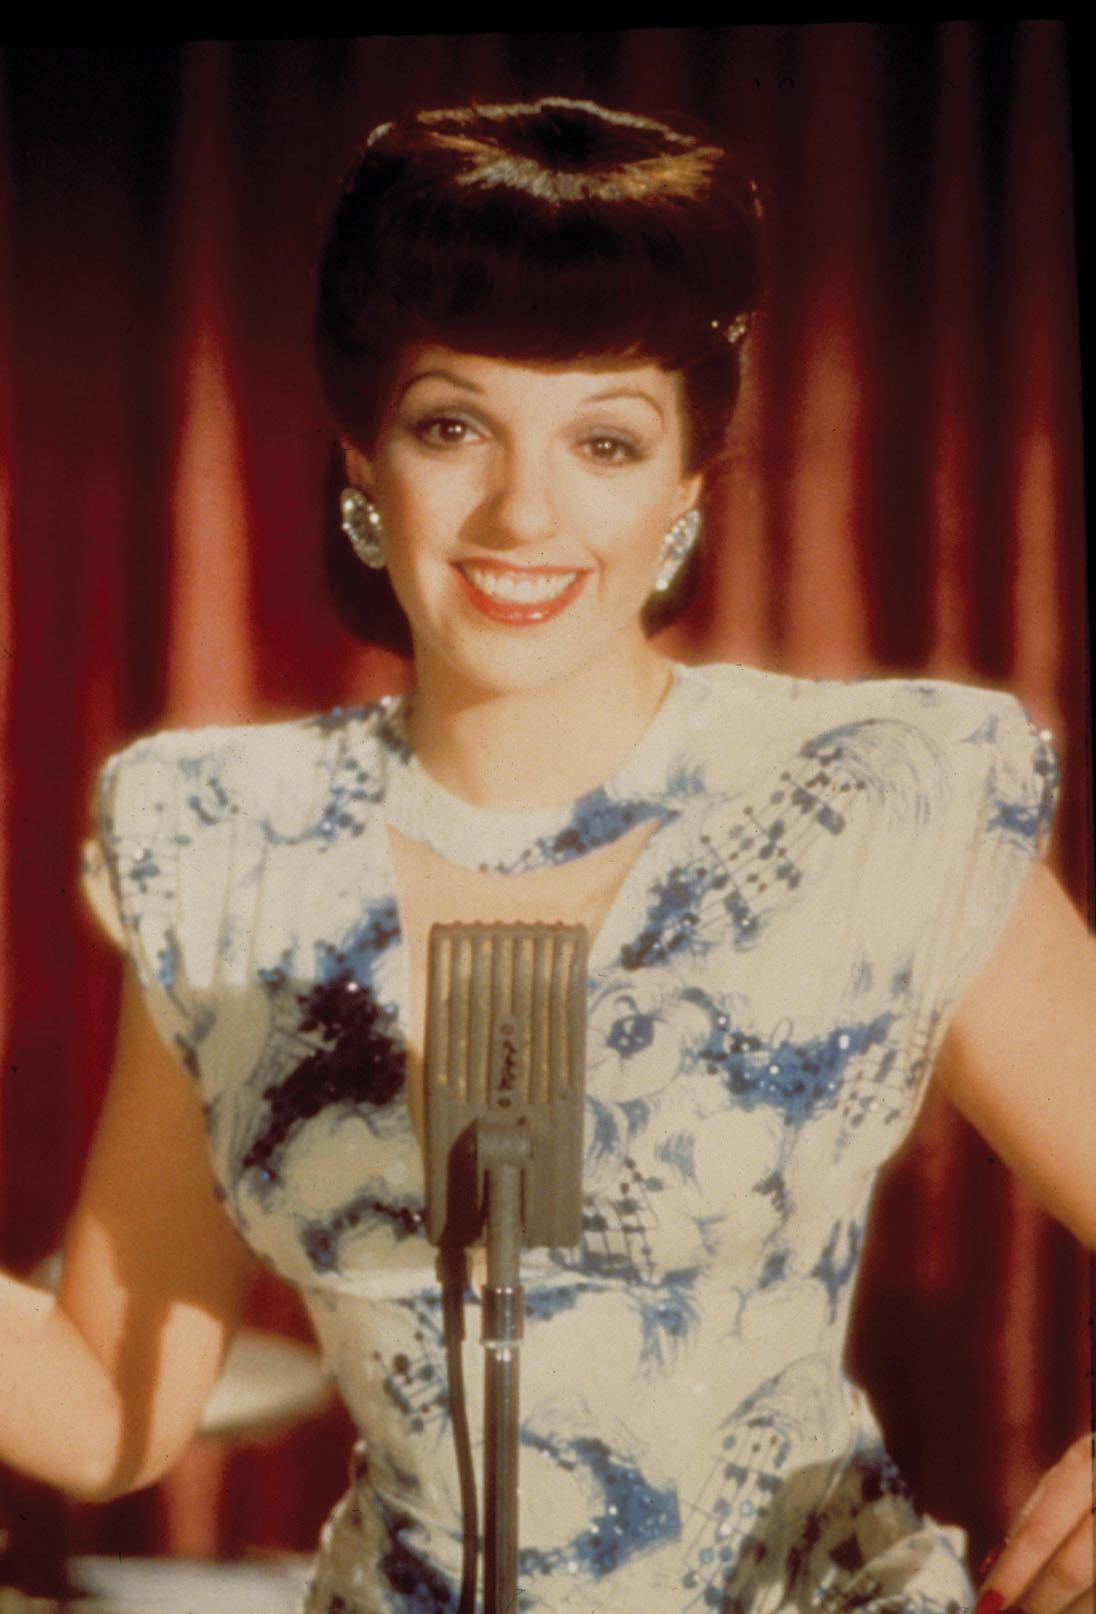 Minnelli with a beehive hairdo, wearing a blue, flowered dress, in front of a microphone, red curtain in the background